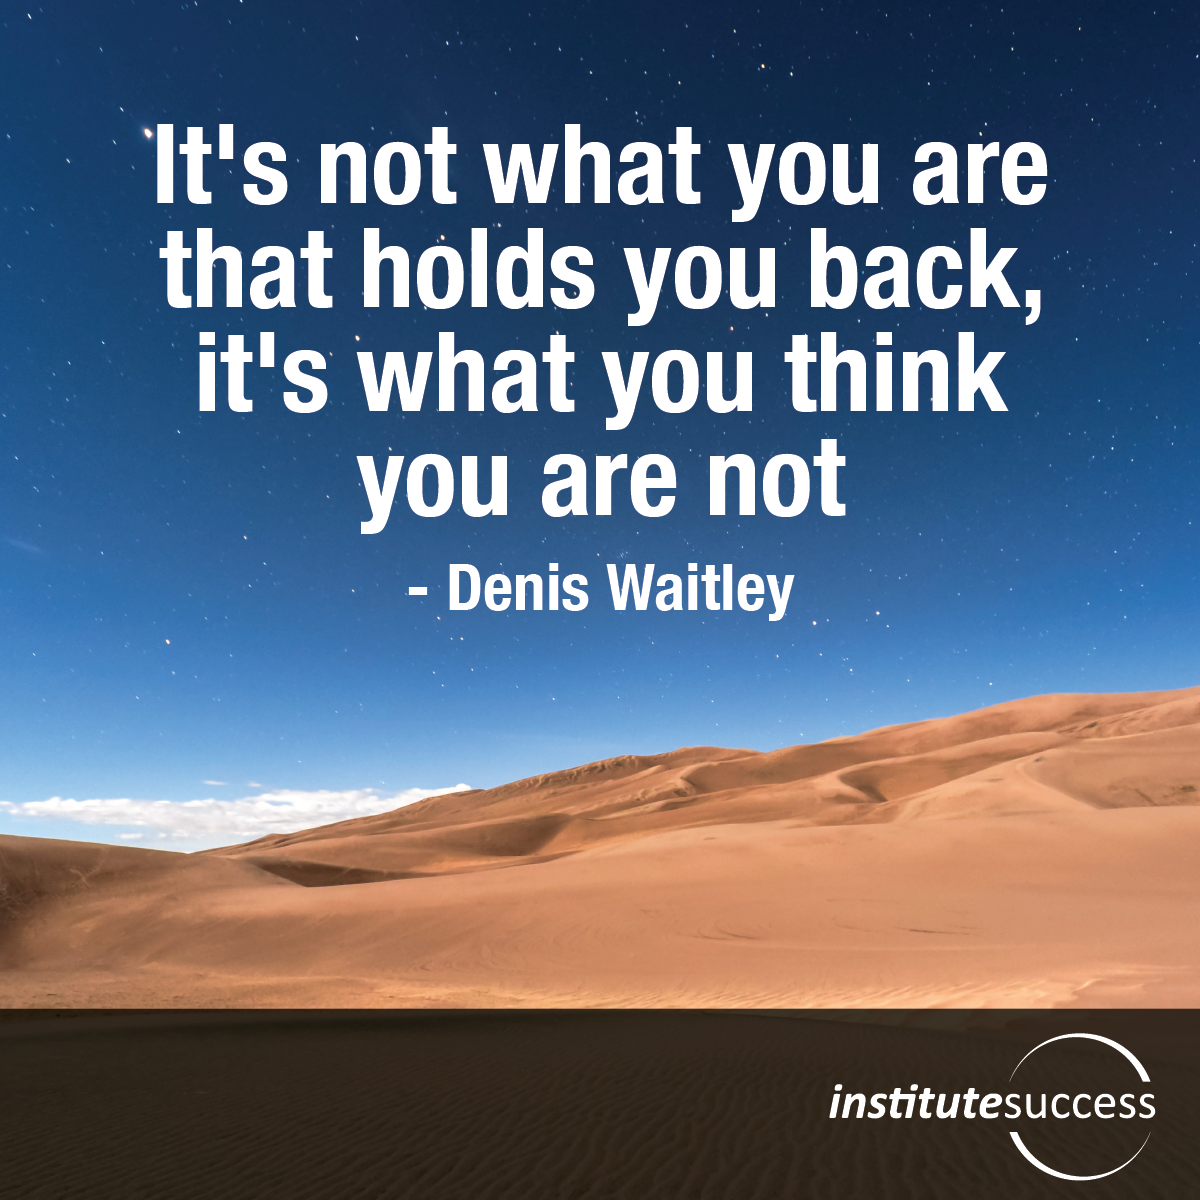 It's not what you are that holds you back, it's what you think you are not – Denis Waitley